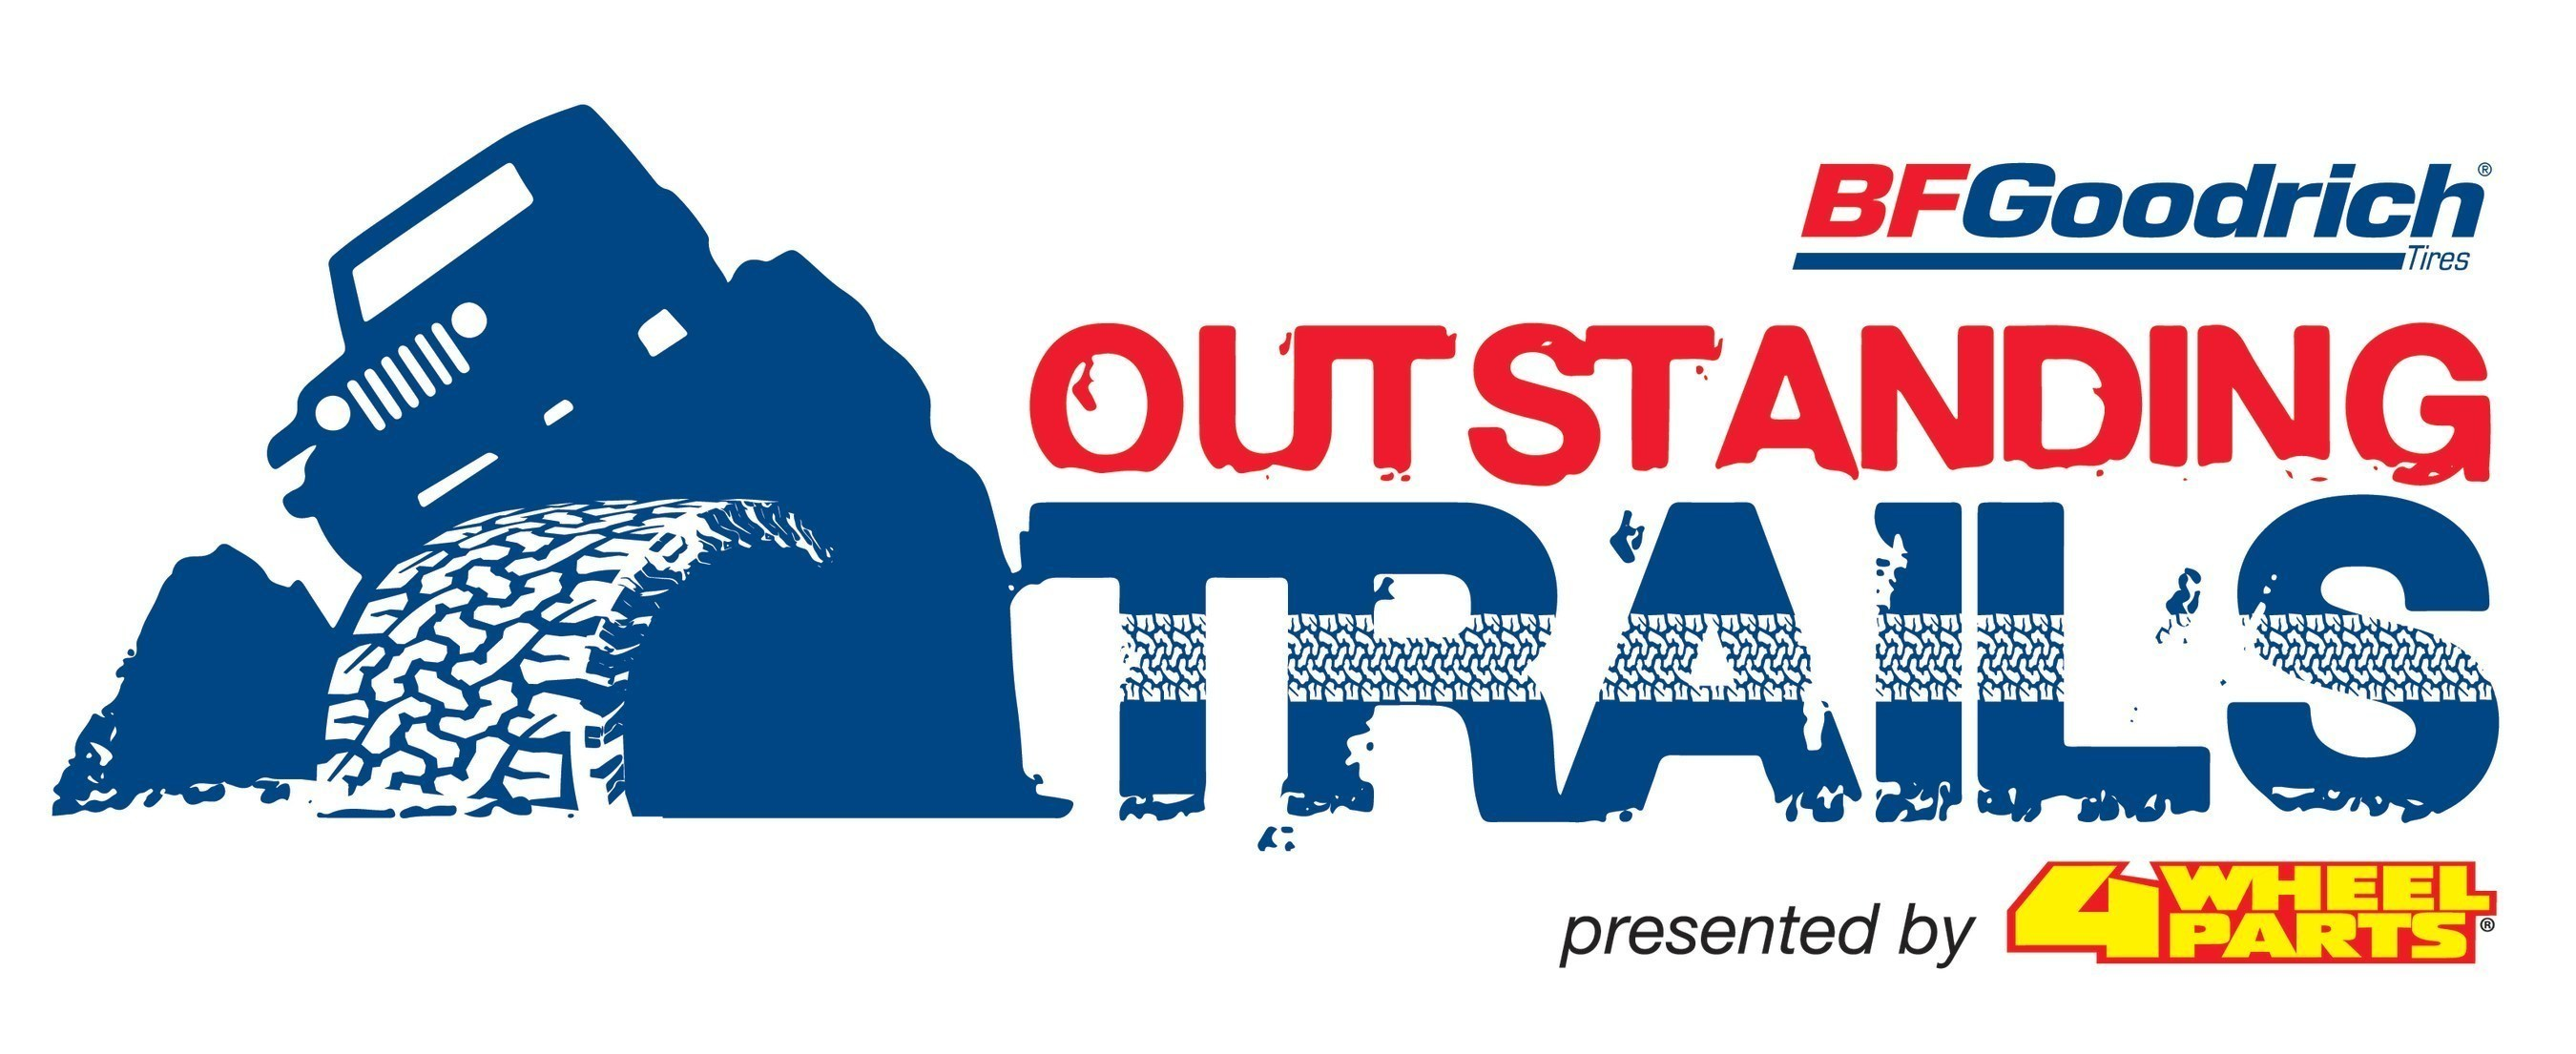 BFGoodrich® Tires Launches 2016 Outstanding Trails Program.